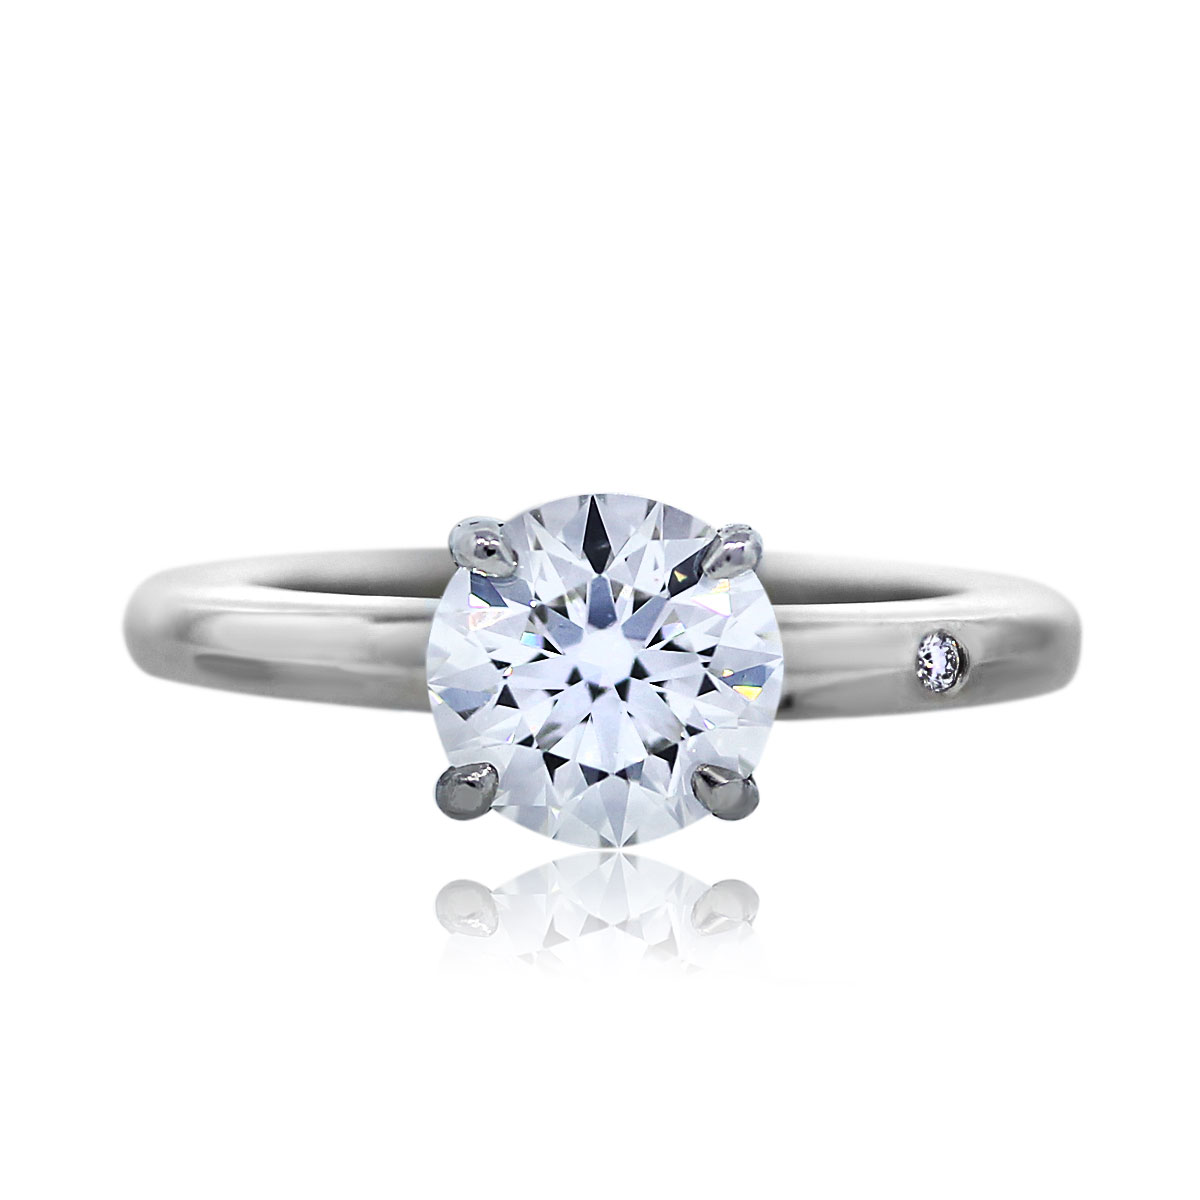 Hamilton Signature 1.06 Carat Solitaire Diamond Ring